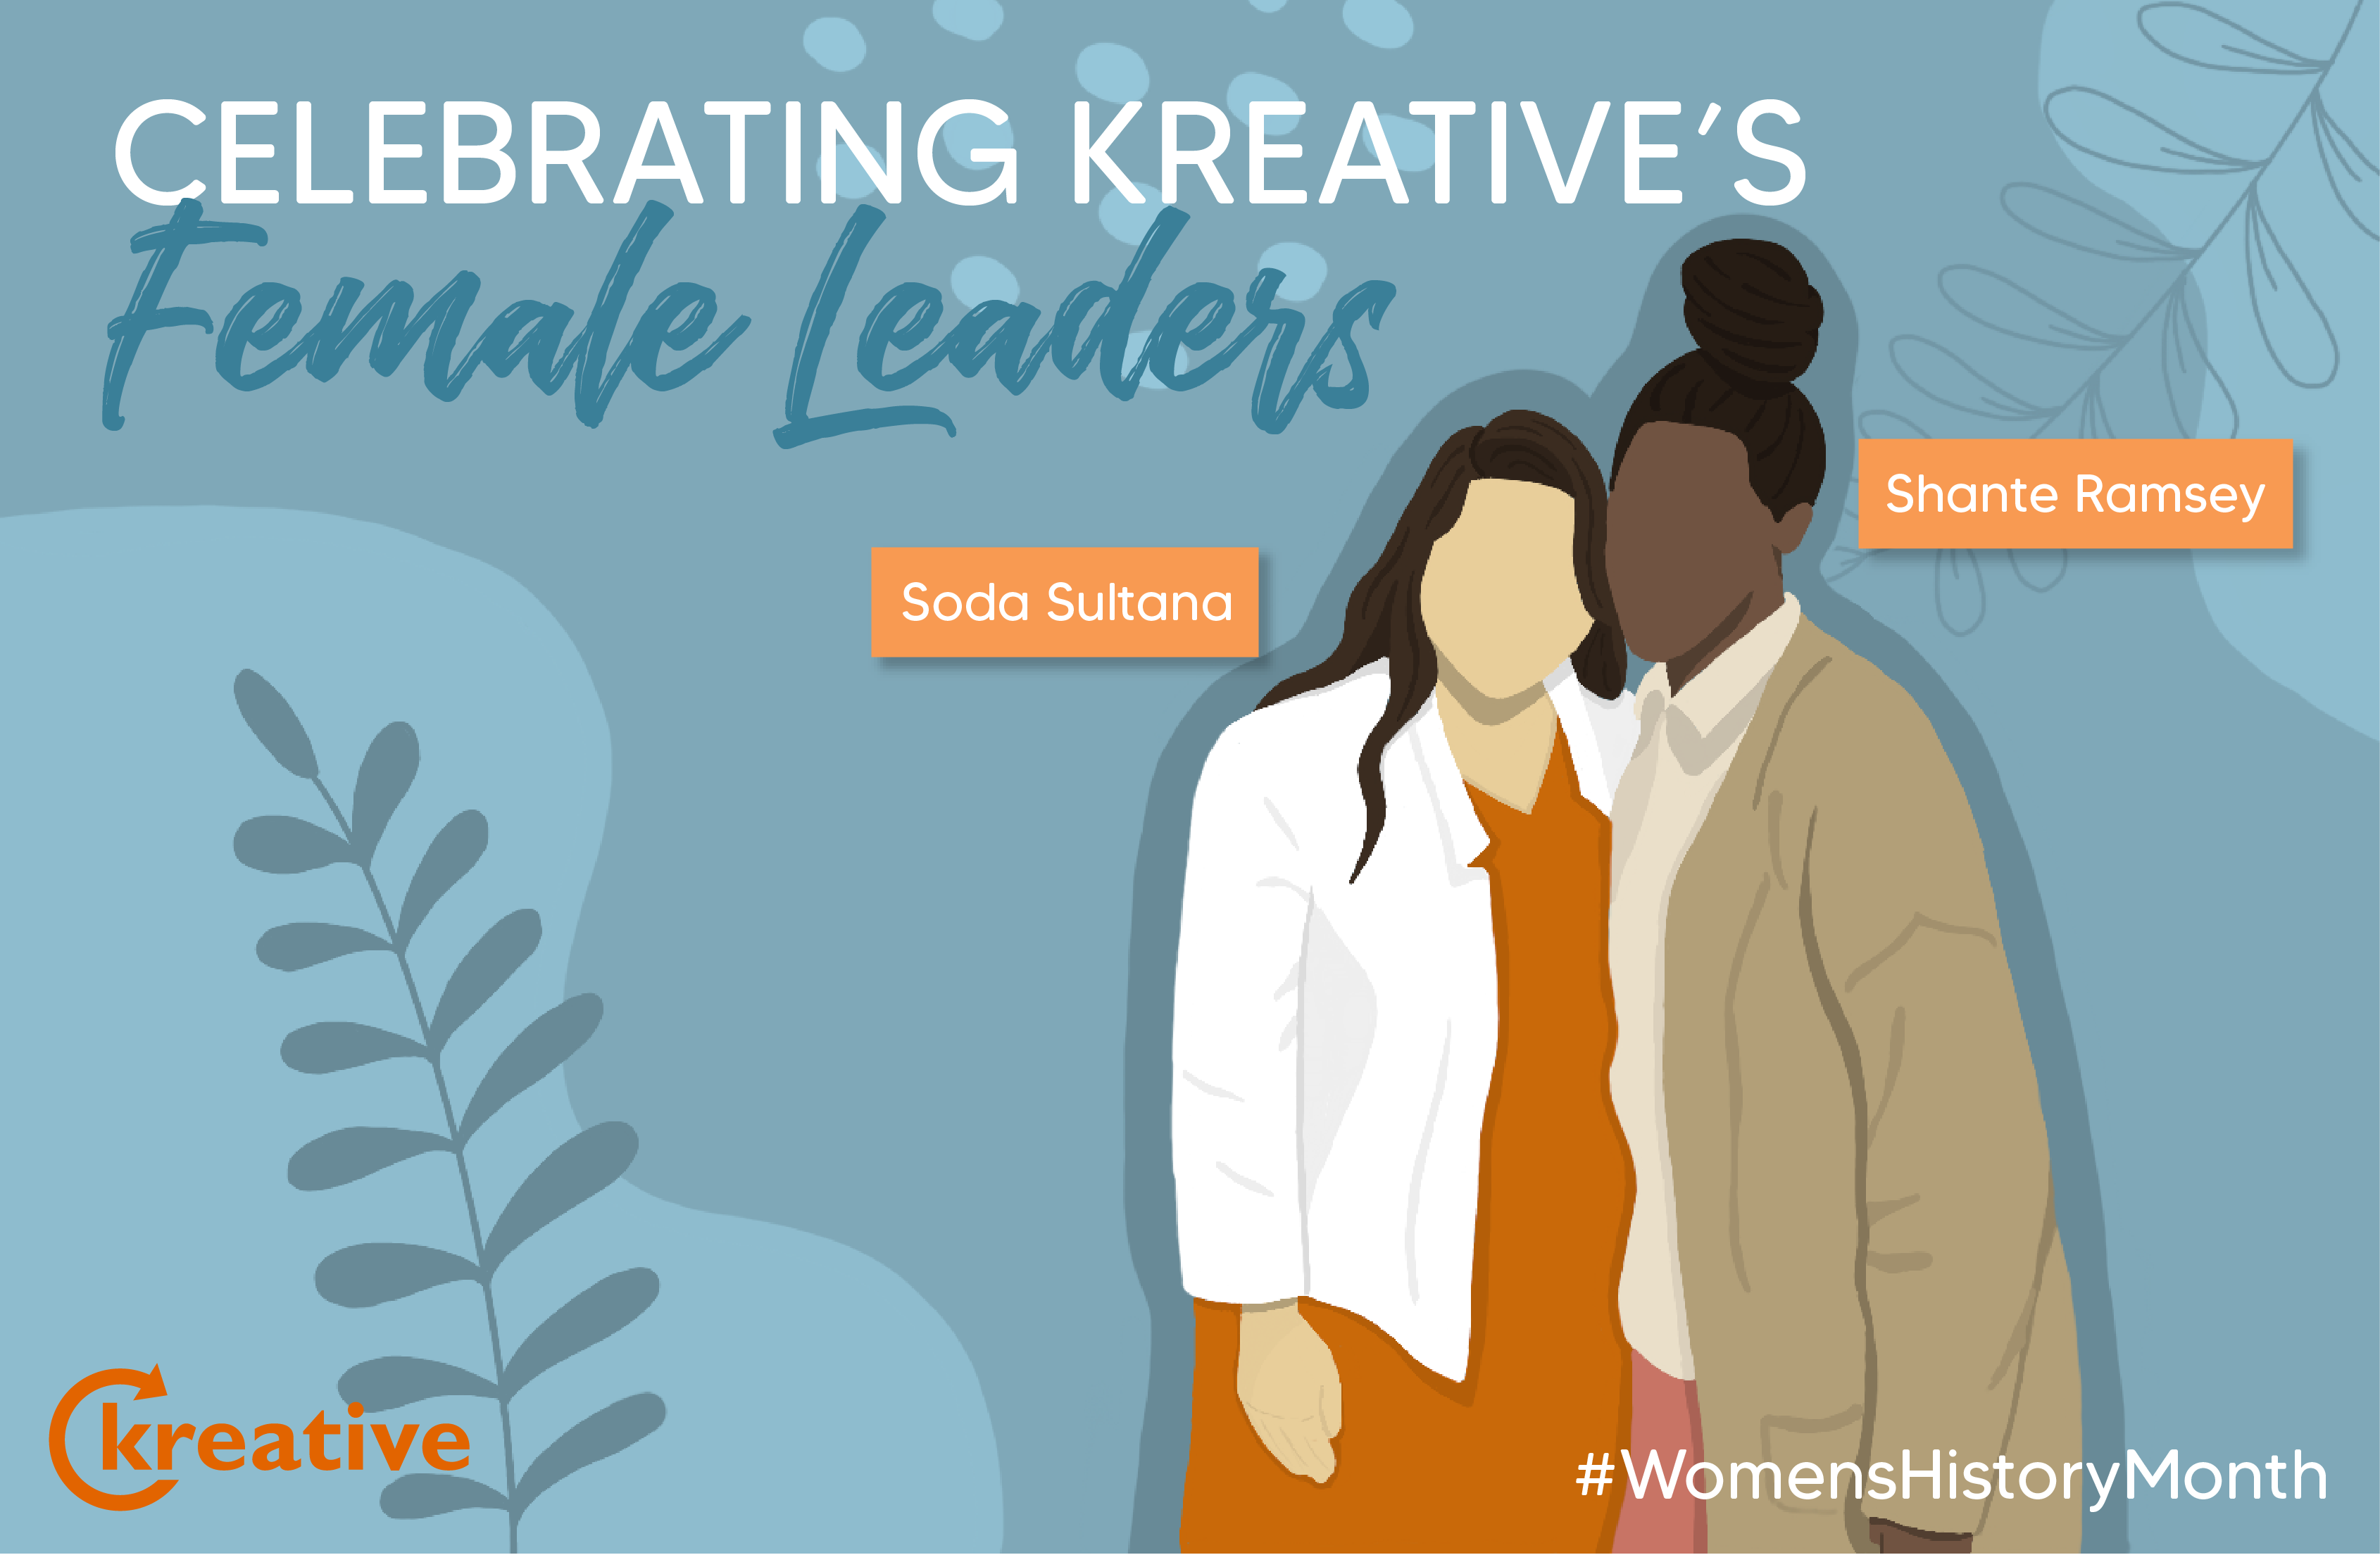 Women's History Month – Celebrating Kreative's Female Leaders